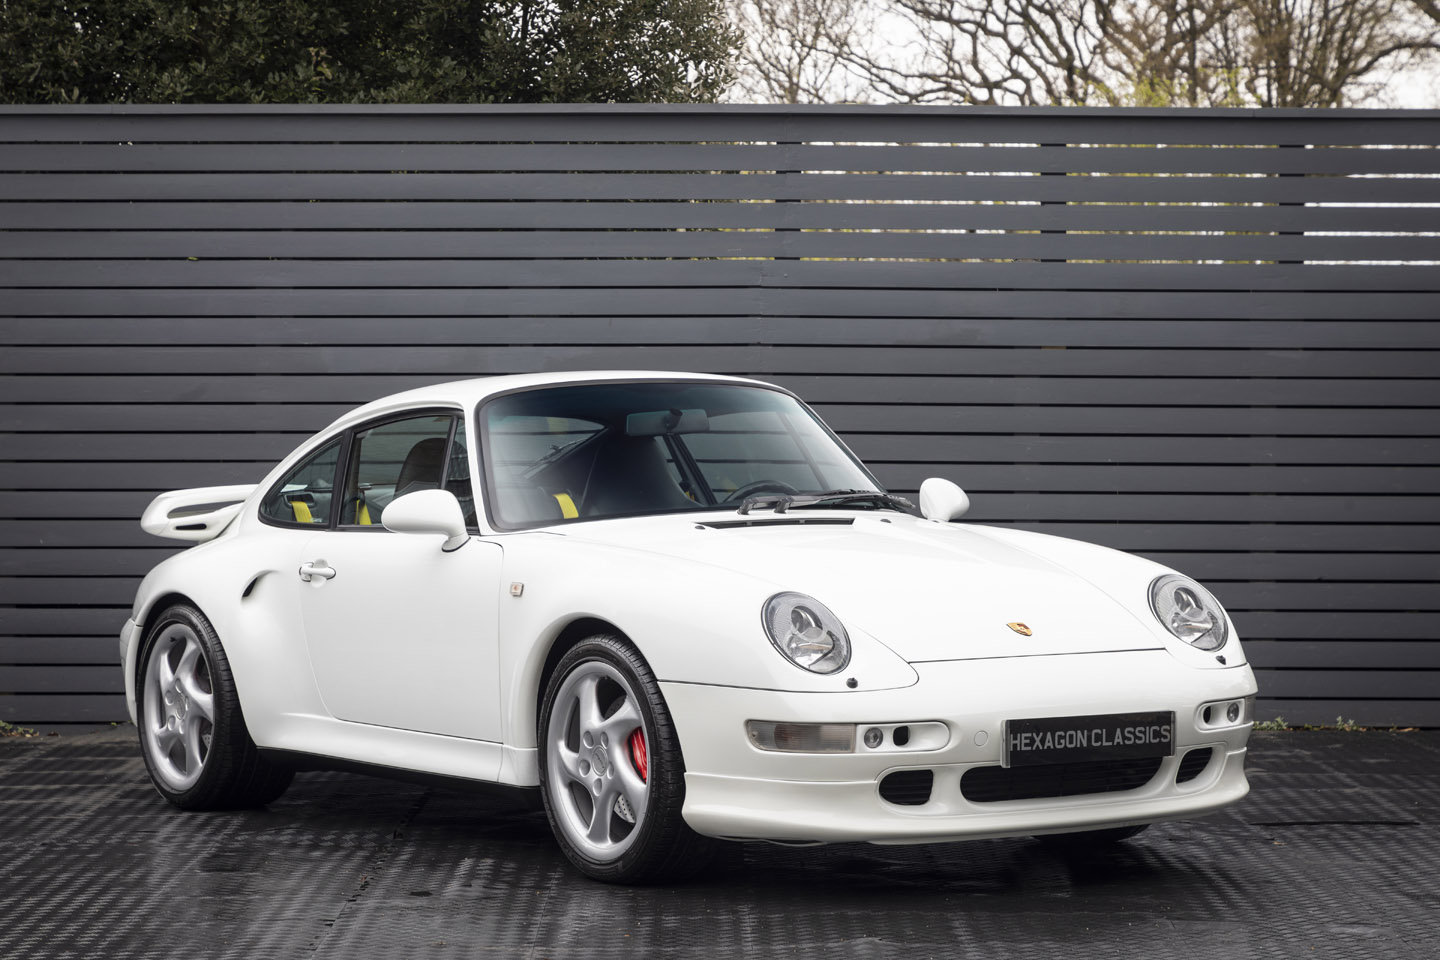 1996 Porsche 993 TURBO FACTORY X50/X79 PACKS !! LHD For Sale (picture 1 of 6)